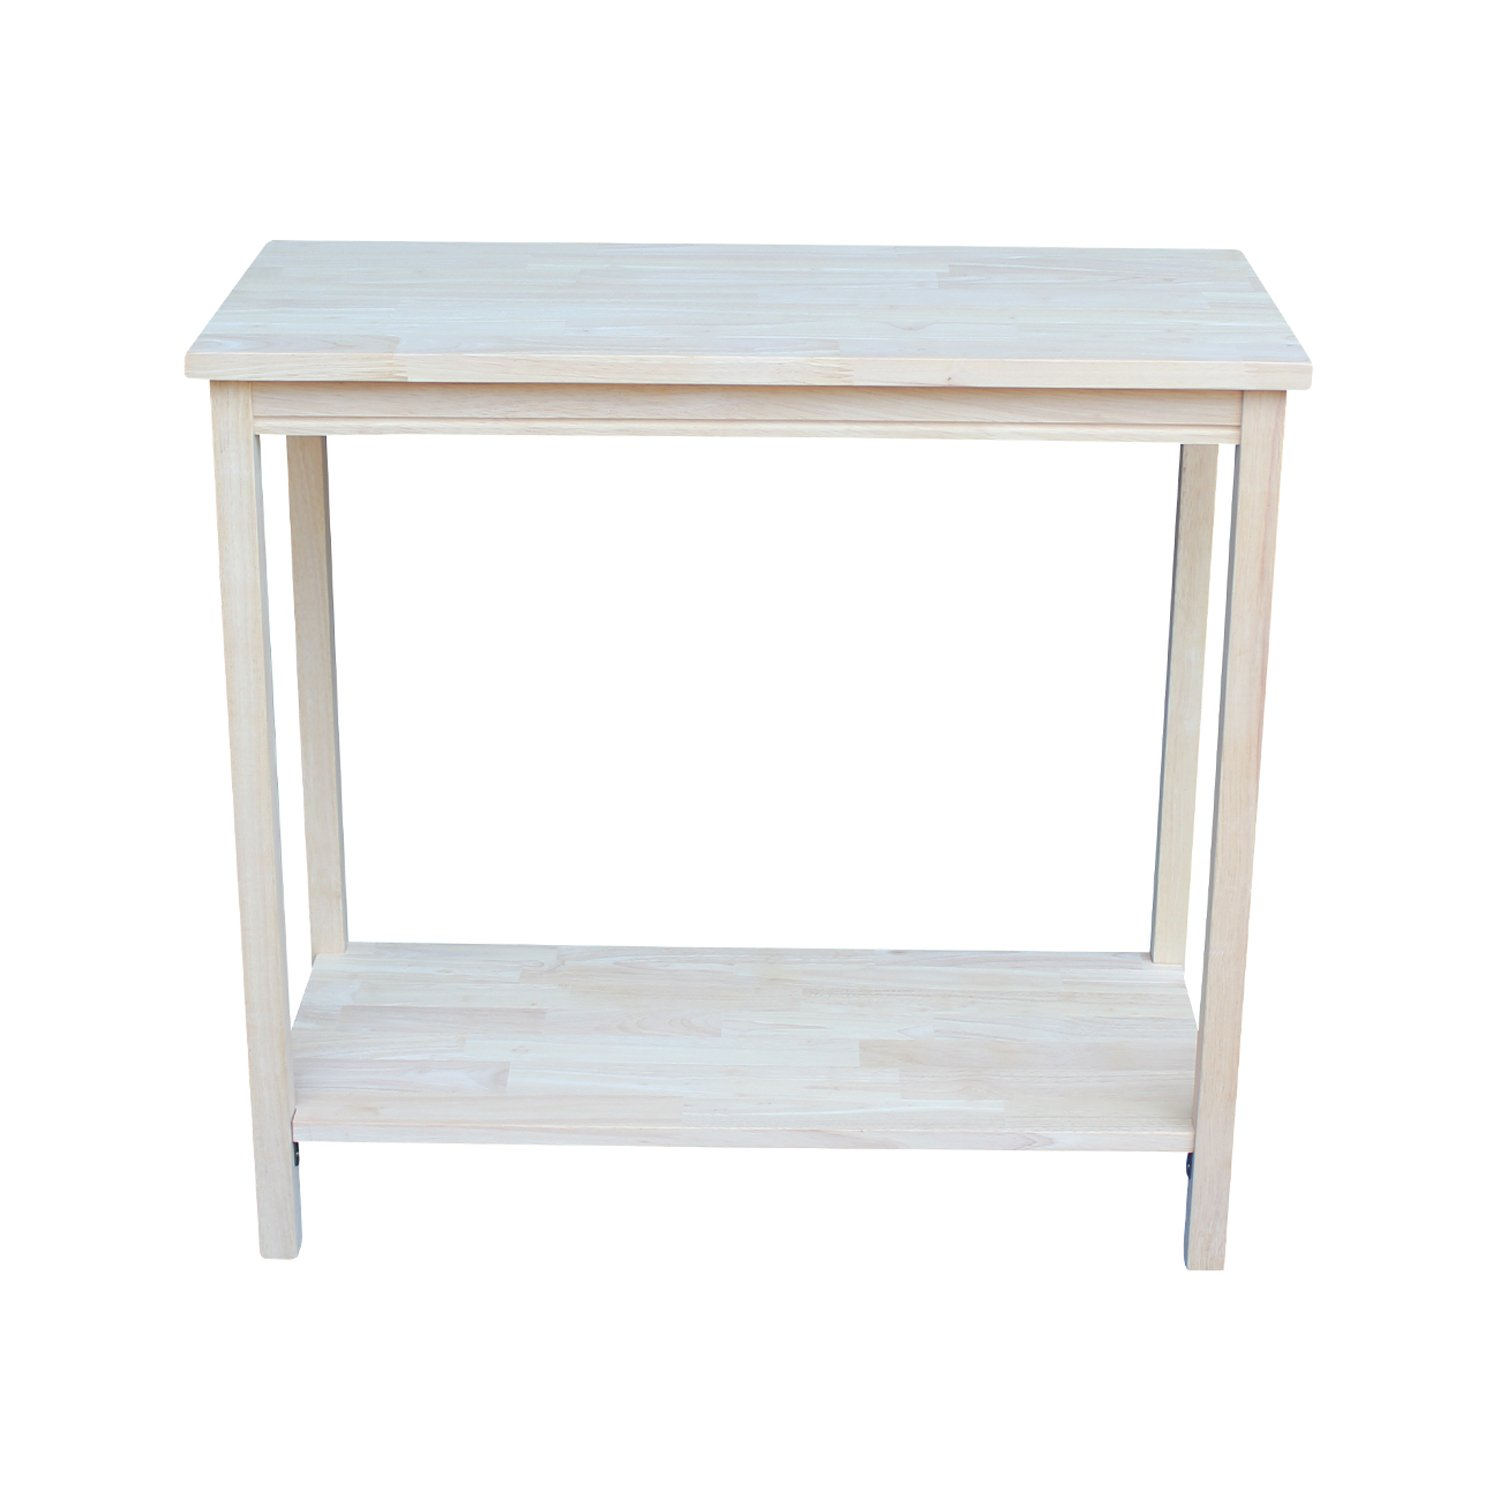 International Concepts OT-43 Accent Table, Unfinished by International Concepts (Image #3)